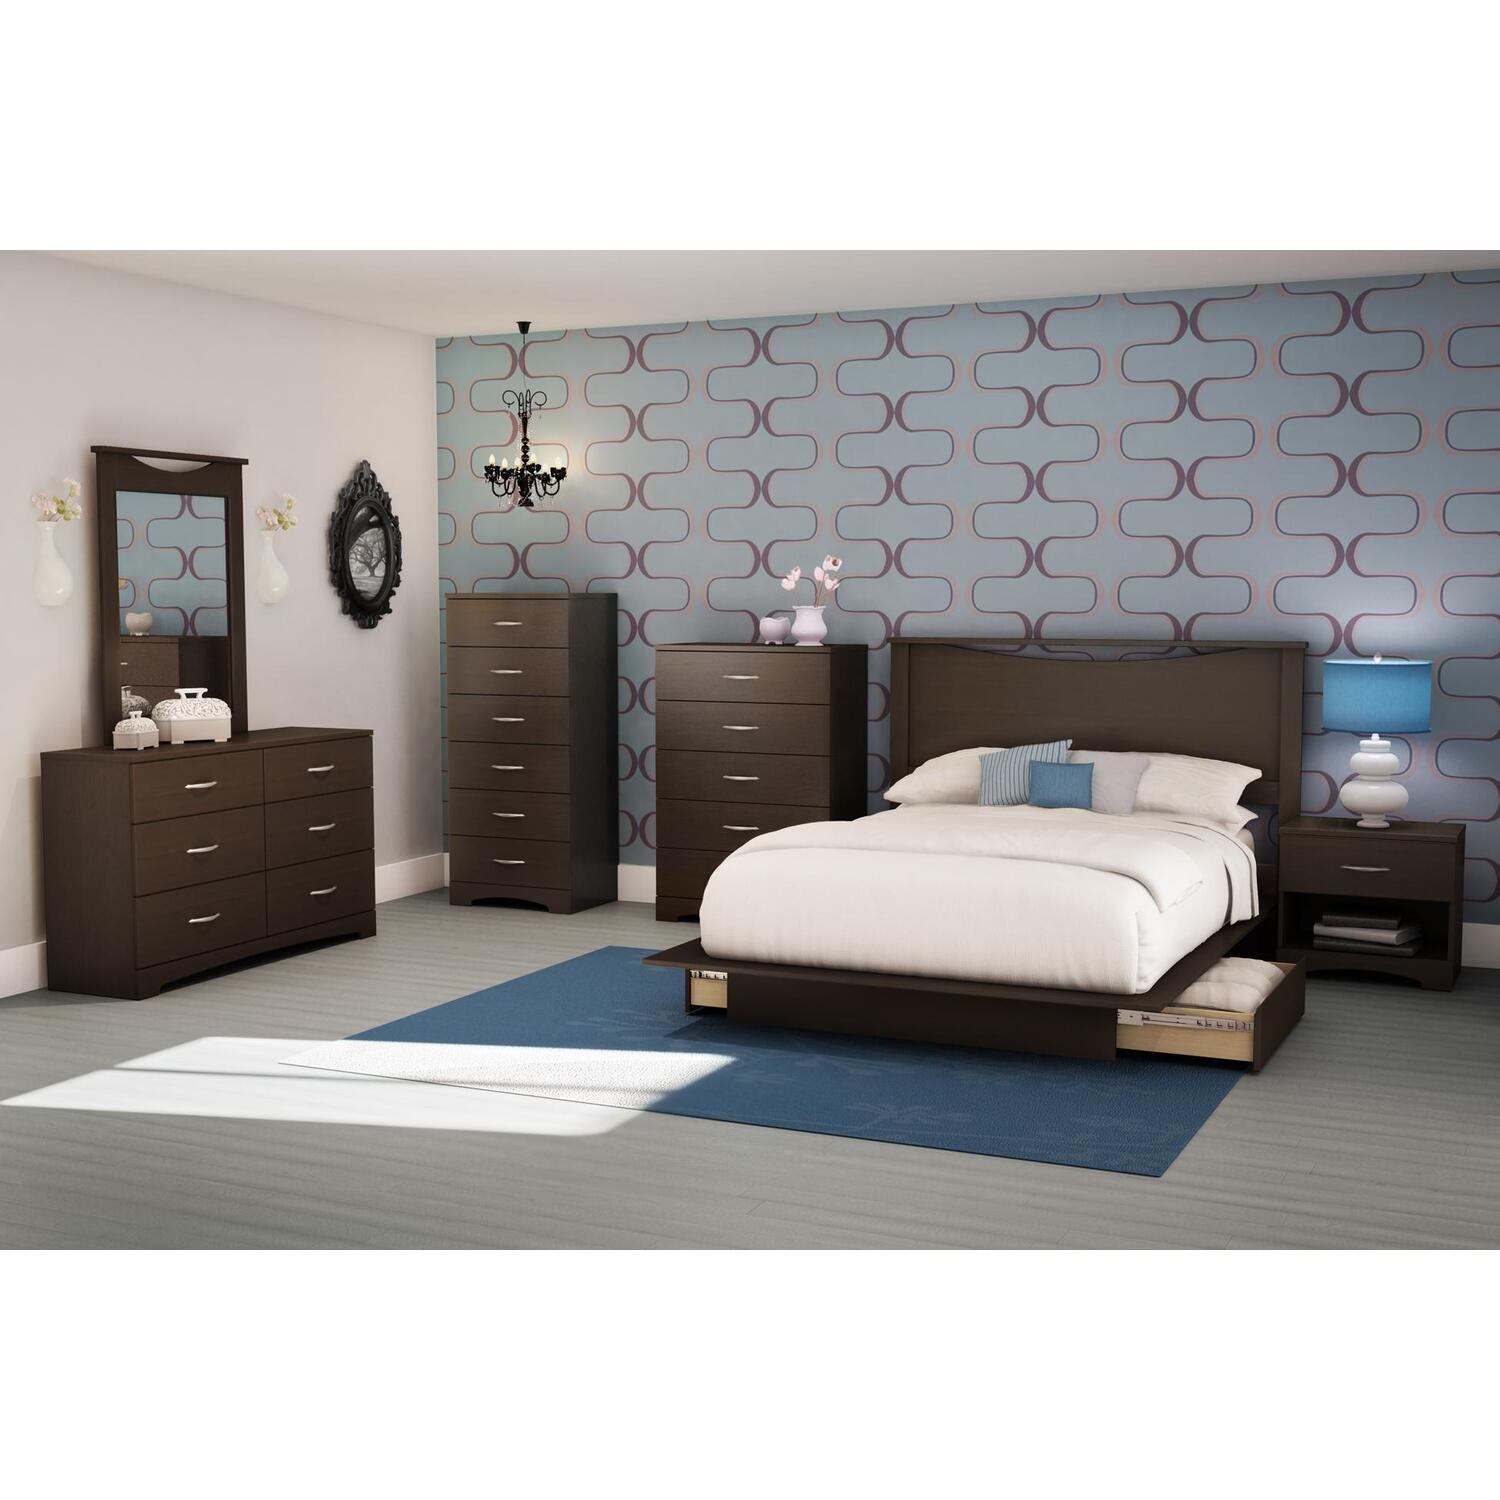 Back Bay Full Queen Platform 7 Piece Bedroom Set    3159FQ7PC. Furniture  Home Goods  Appliances  Athletic Gear  Fitness  Toys